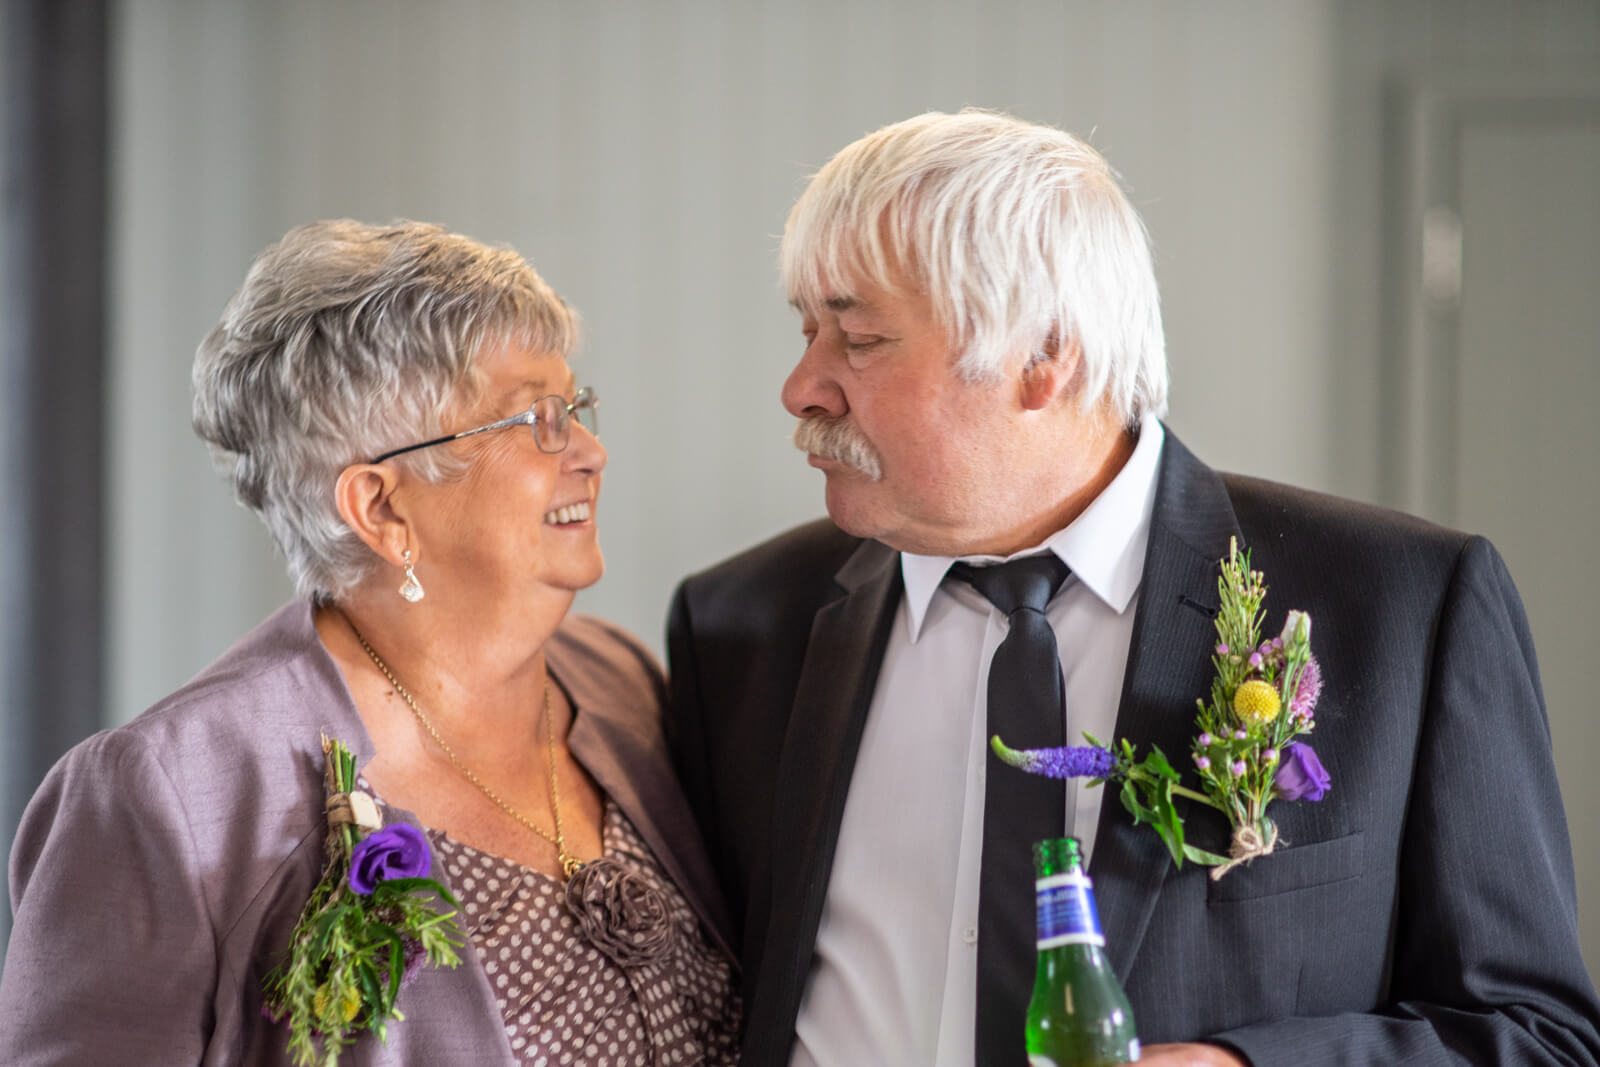 Aunt and Uncle of the groom look at each other and smile